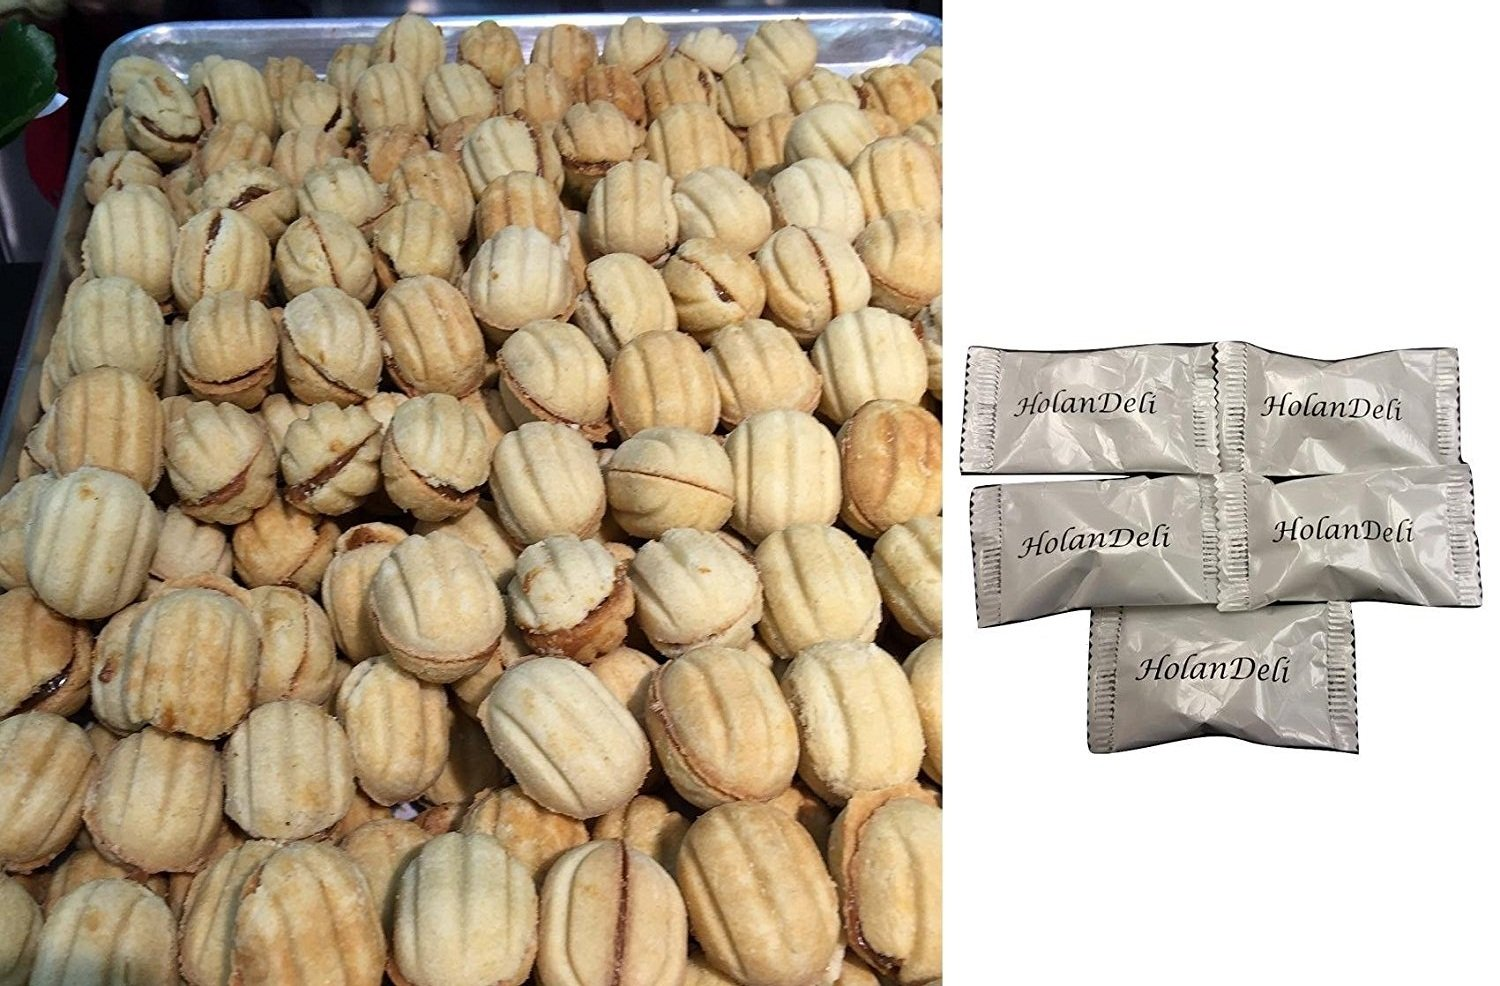 NEW! Oreshki (Sweet nuts filled with condensed milk) 1lb by HolanDeli